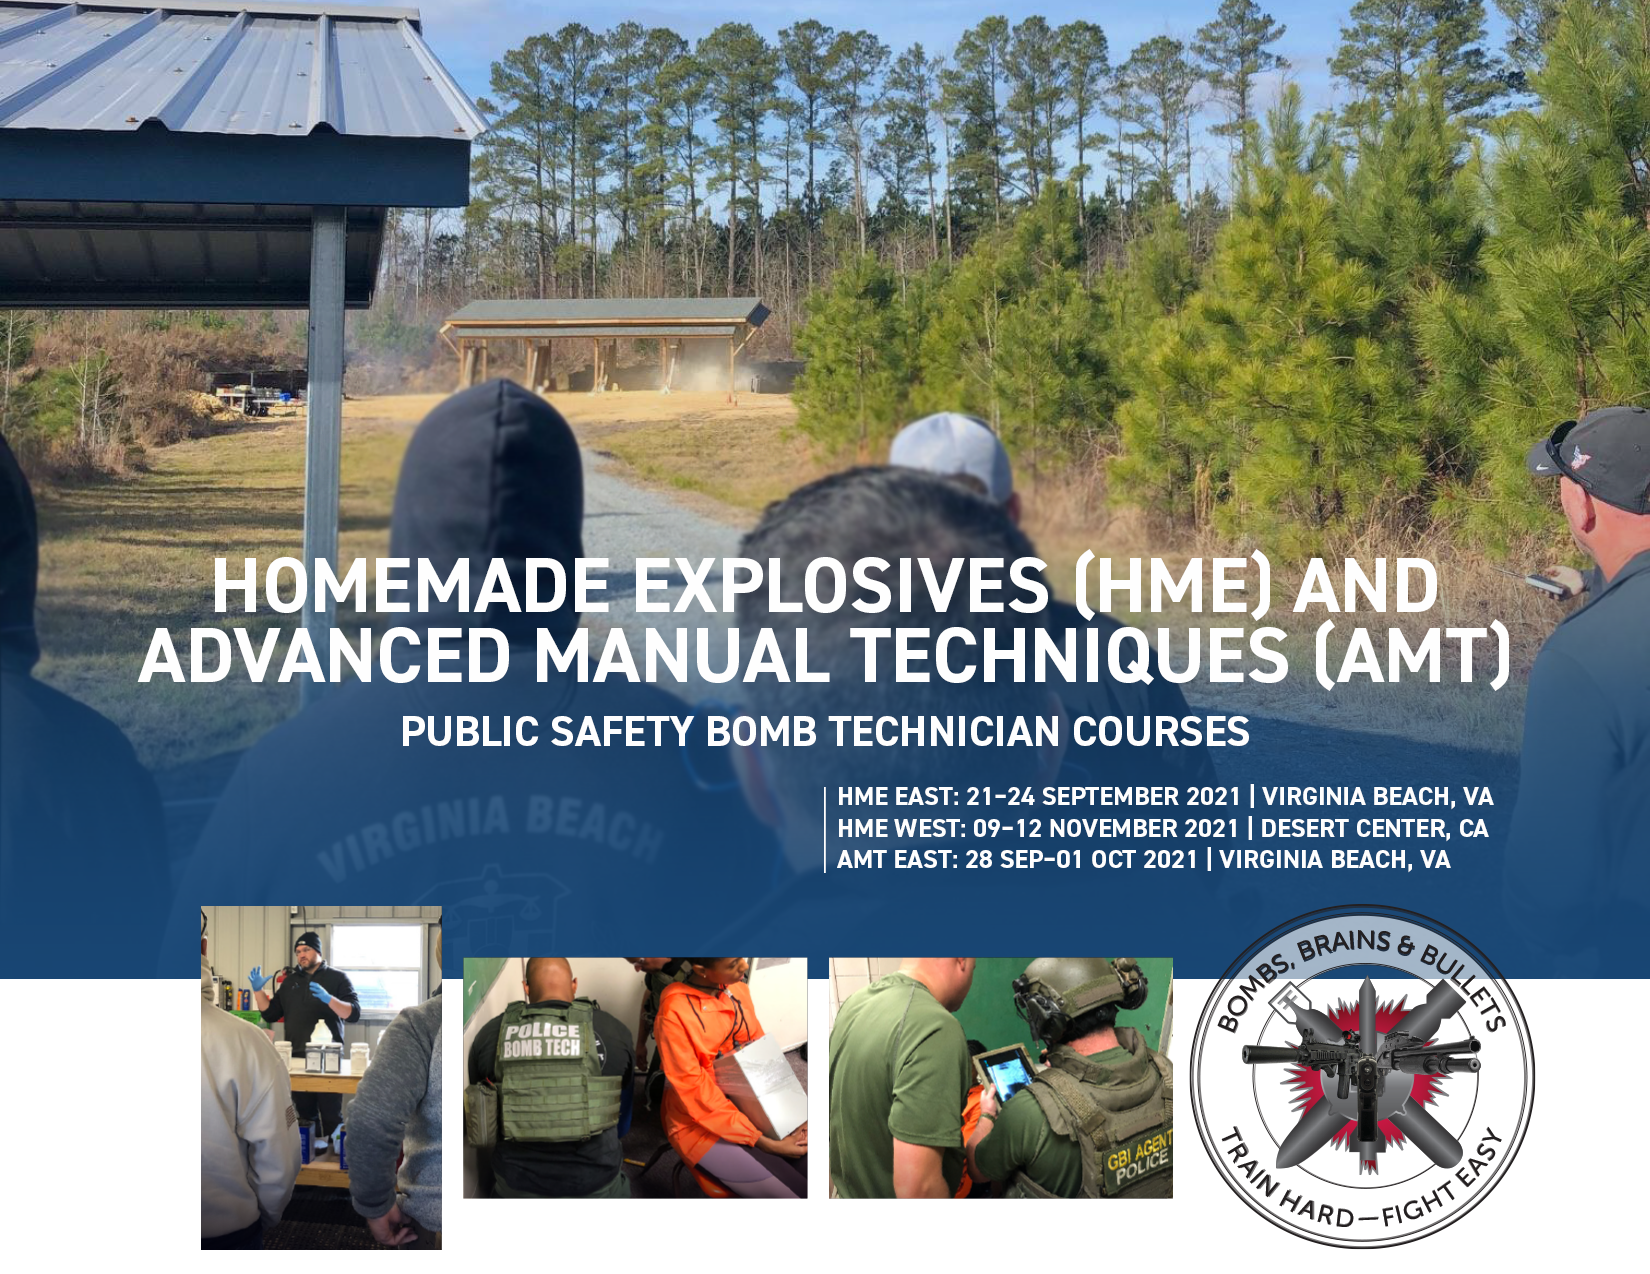 Individually purchasable course seats for bomb techs | PSBT HME & AMT courses